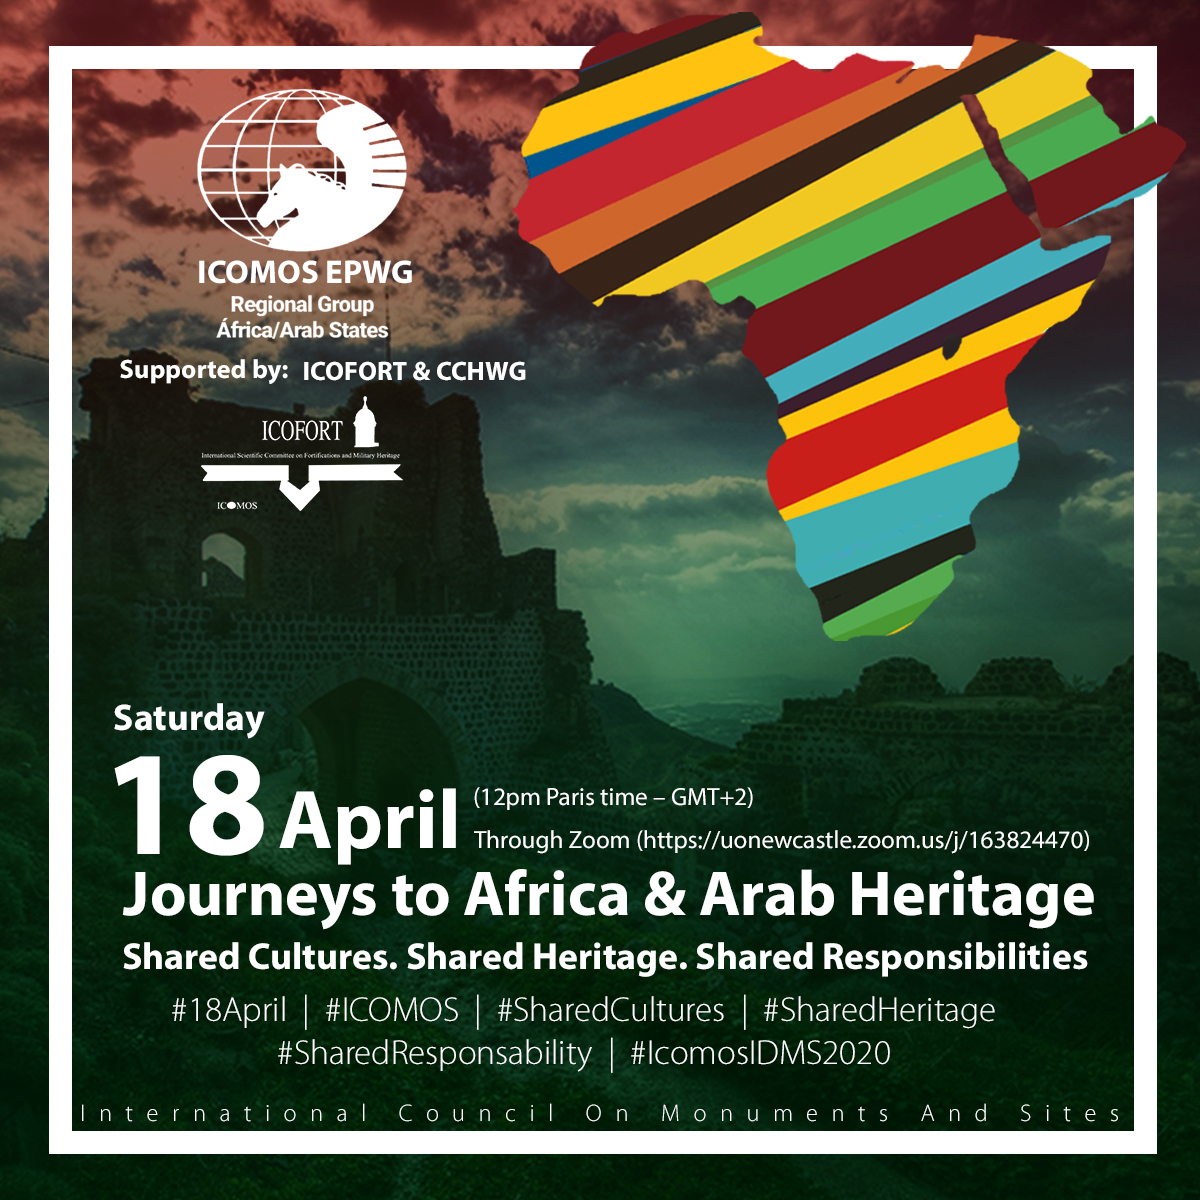 ICOMOS EPWG Africa and Arab State Regions Event 18 April 2020